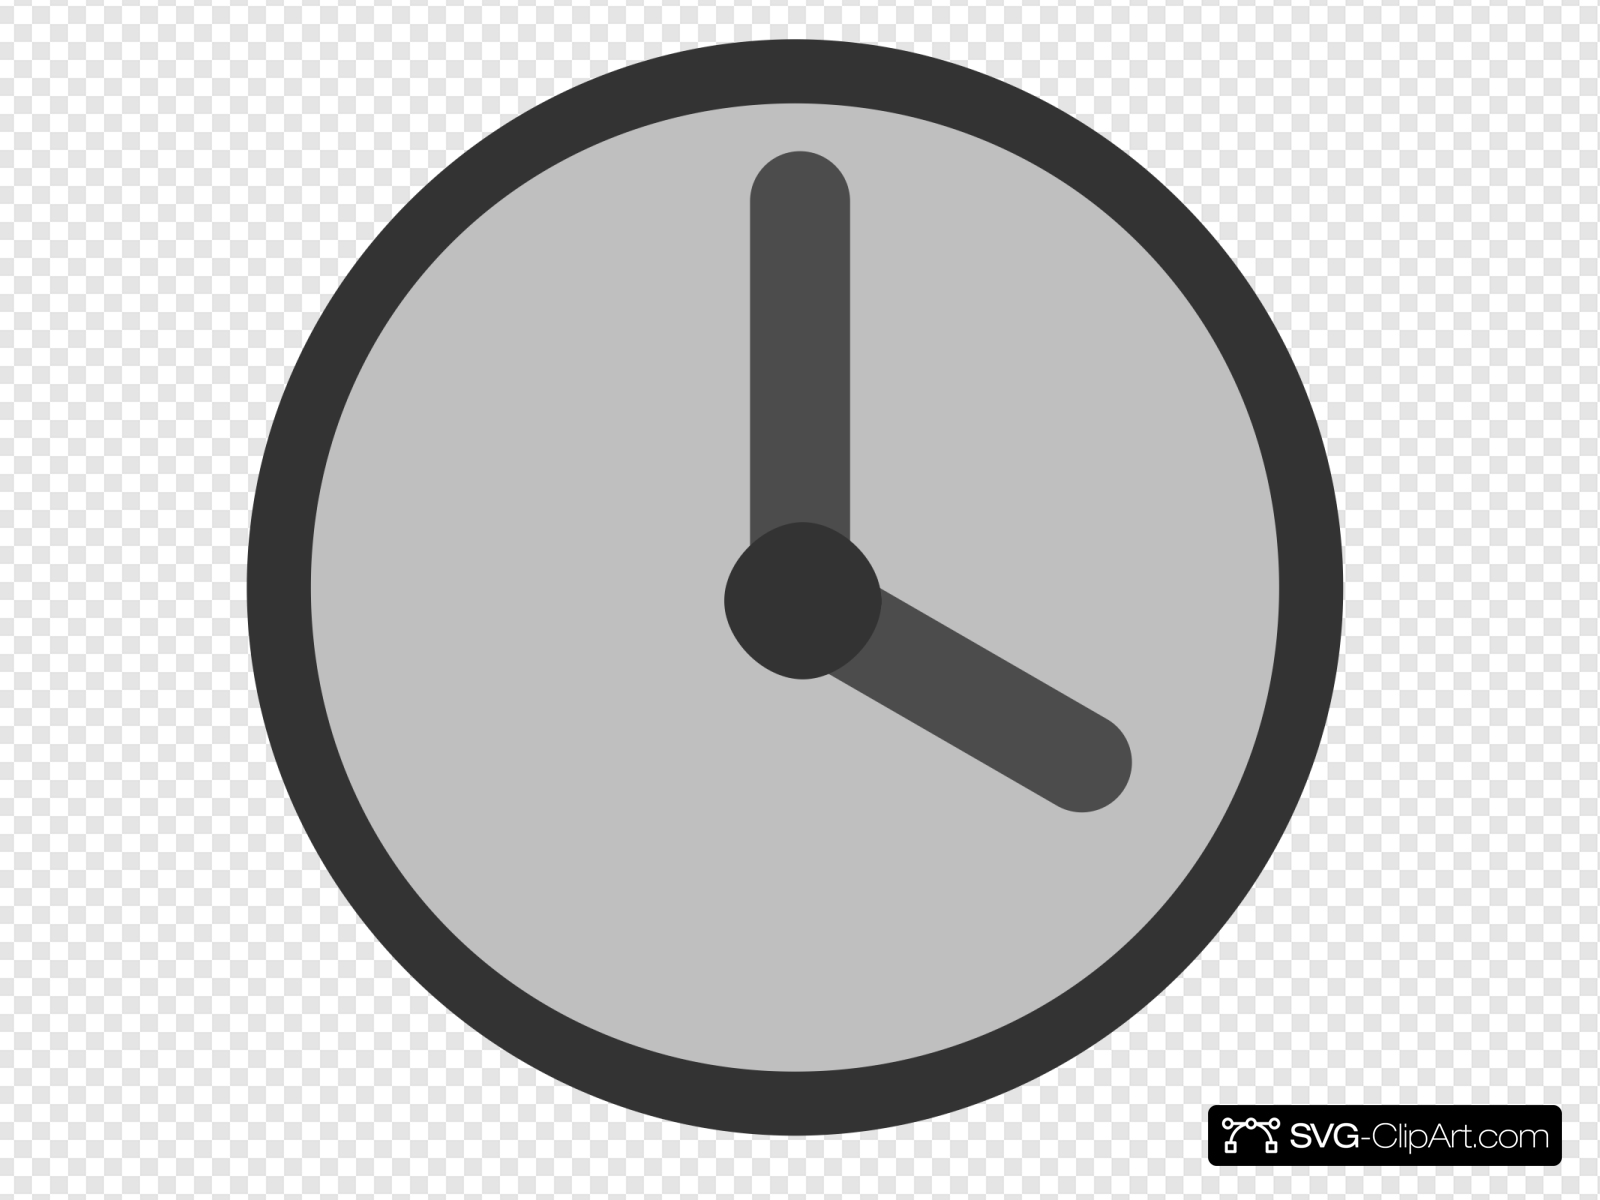 Clock 4:00 Clip art, Icon and SVG.